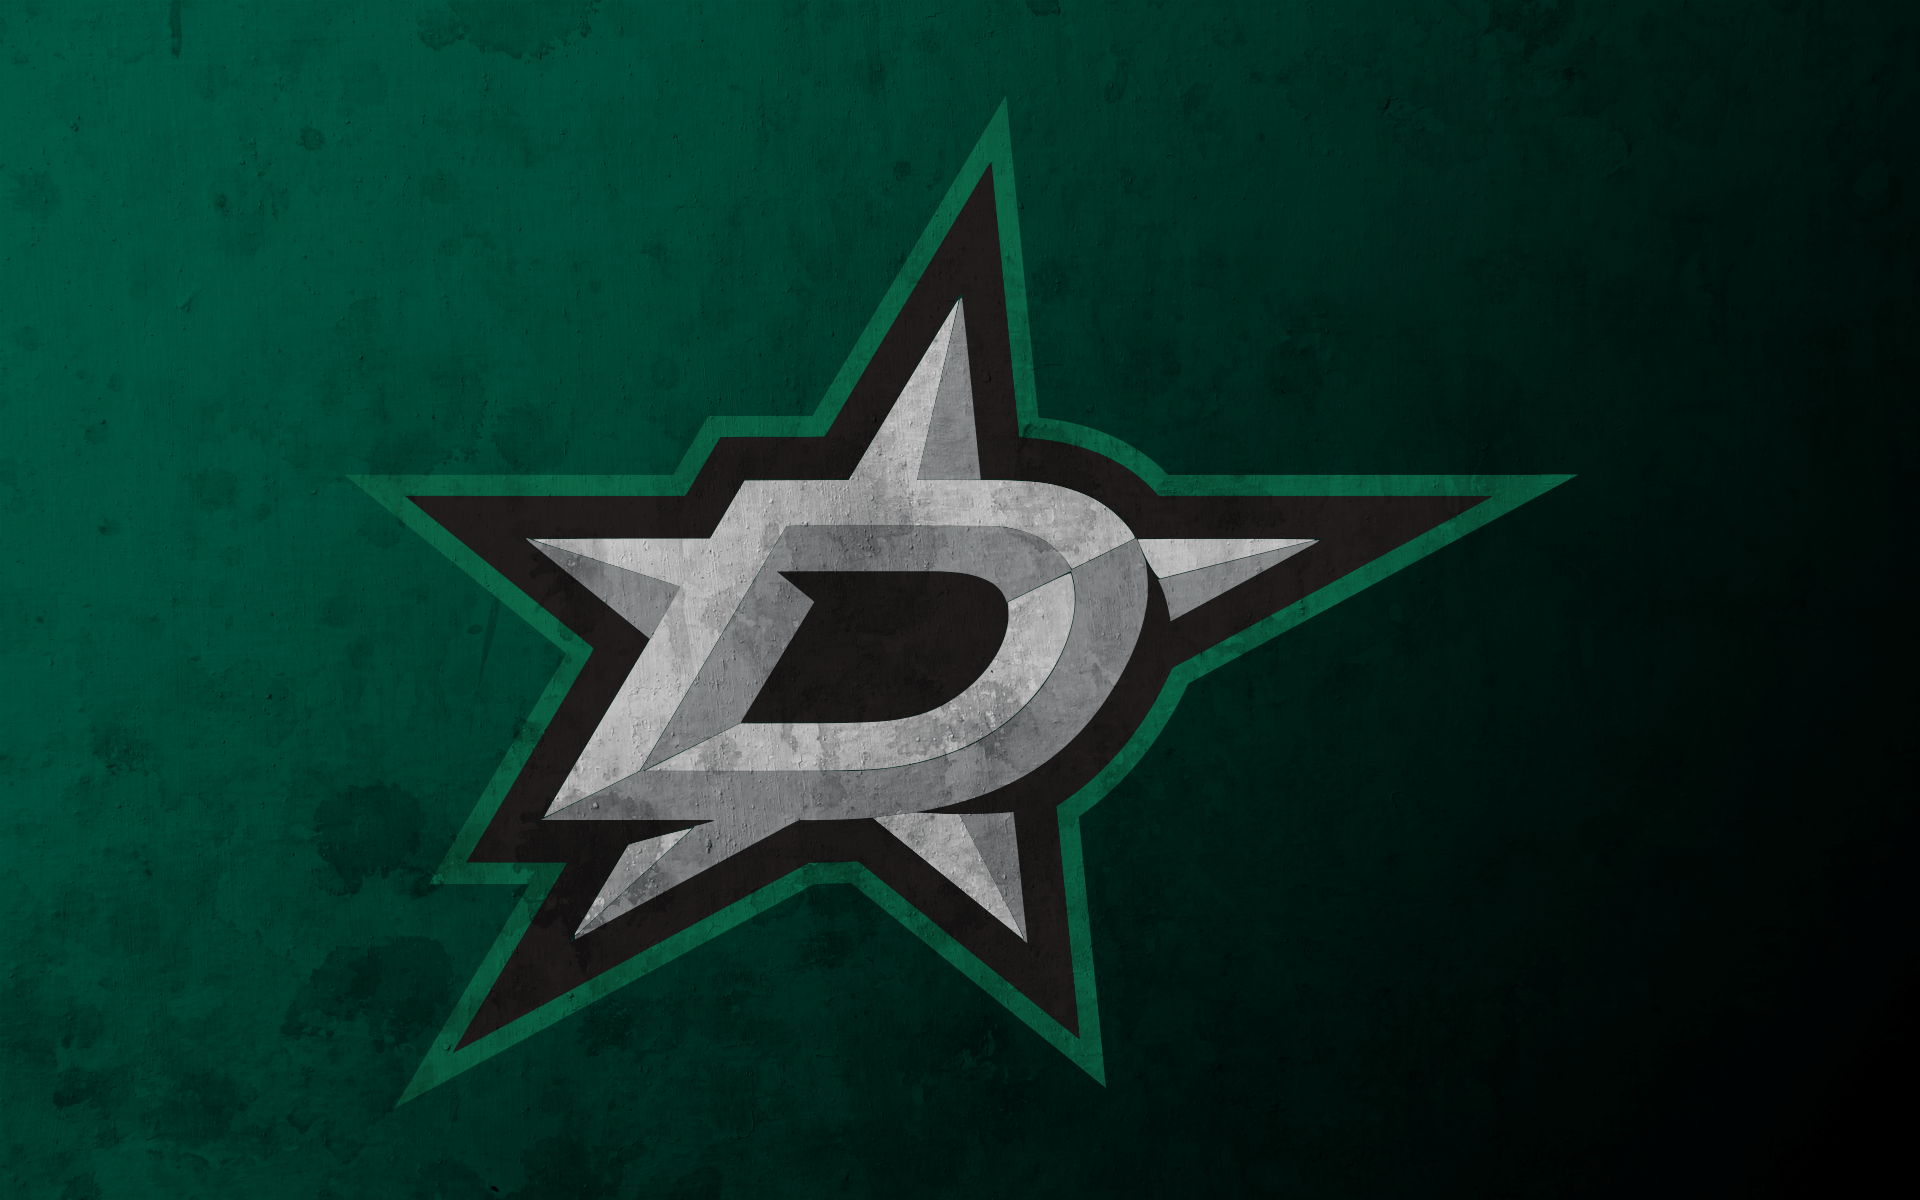 dallas stars - photo #28